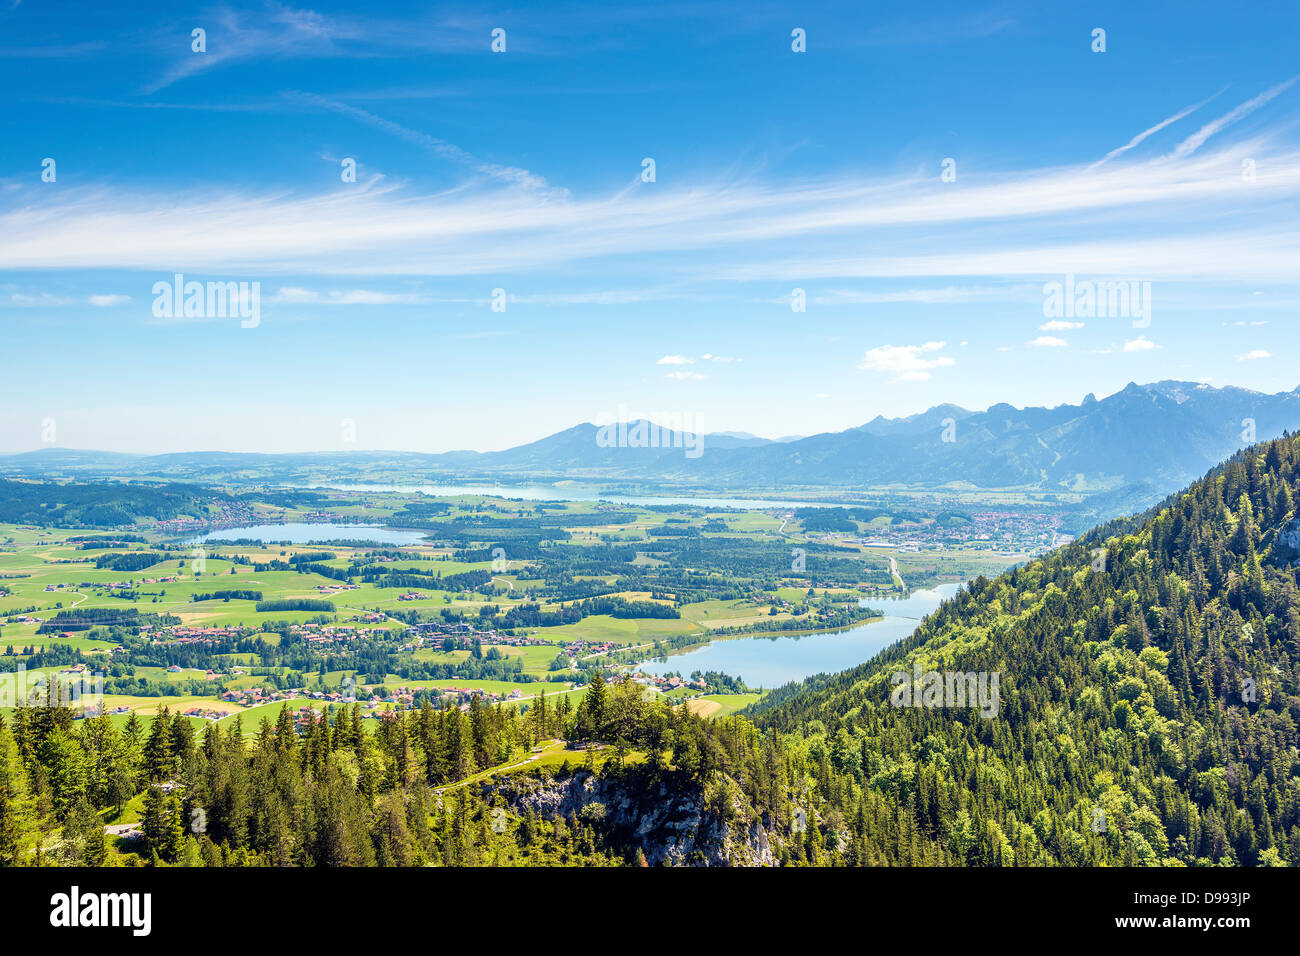 Views of the Allgäu region of Bavaria on villages, mountains, lakes, meadows and forests Stock Photo